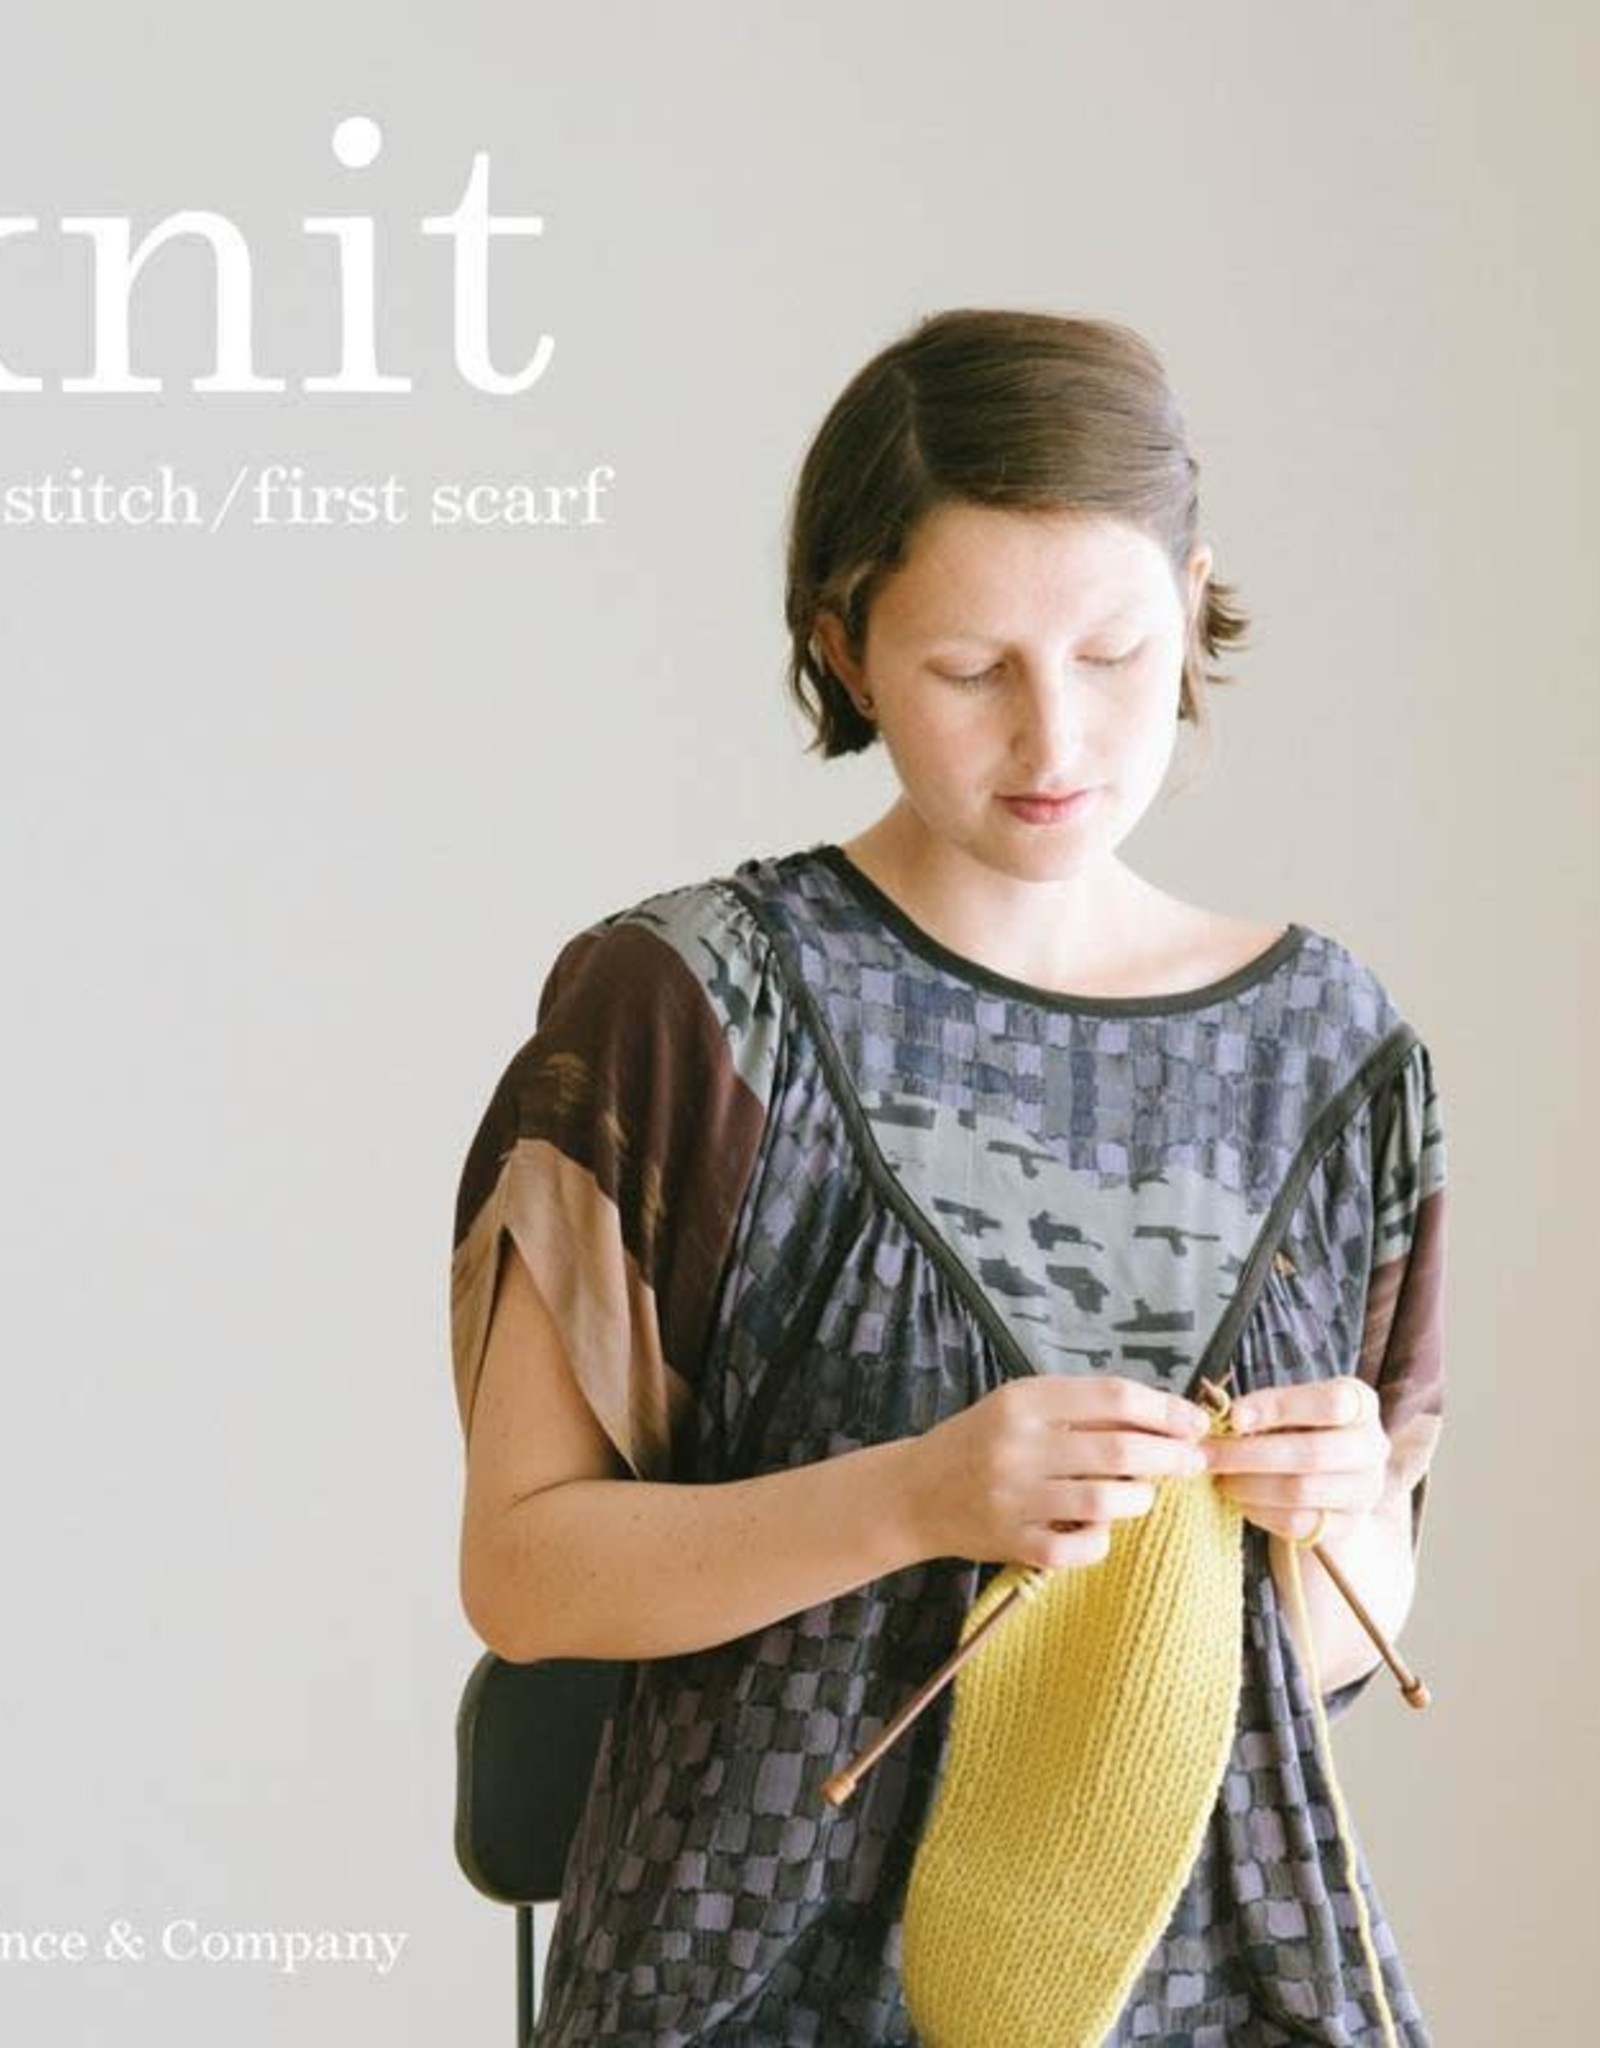 Quince & Co Knit: First Stitch / First Scarf Book